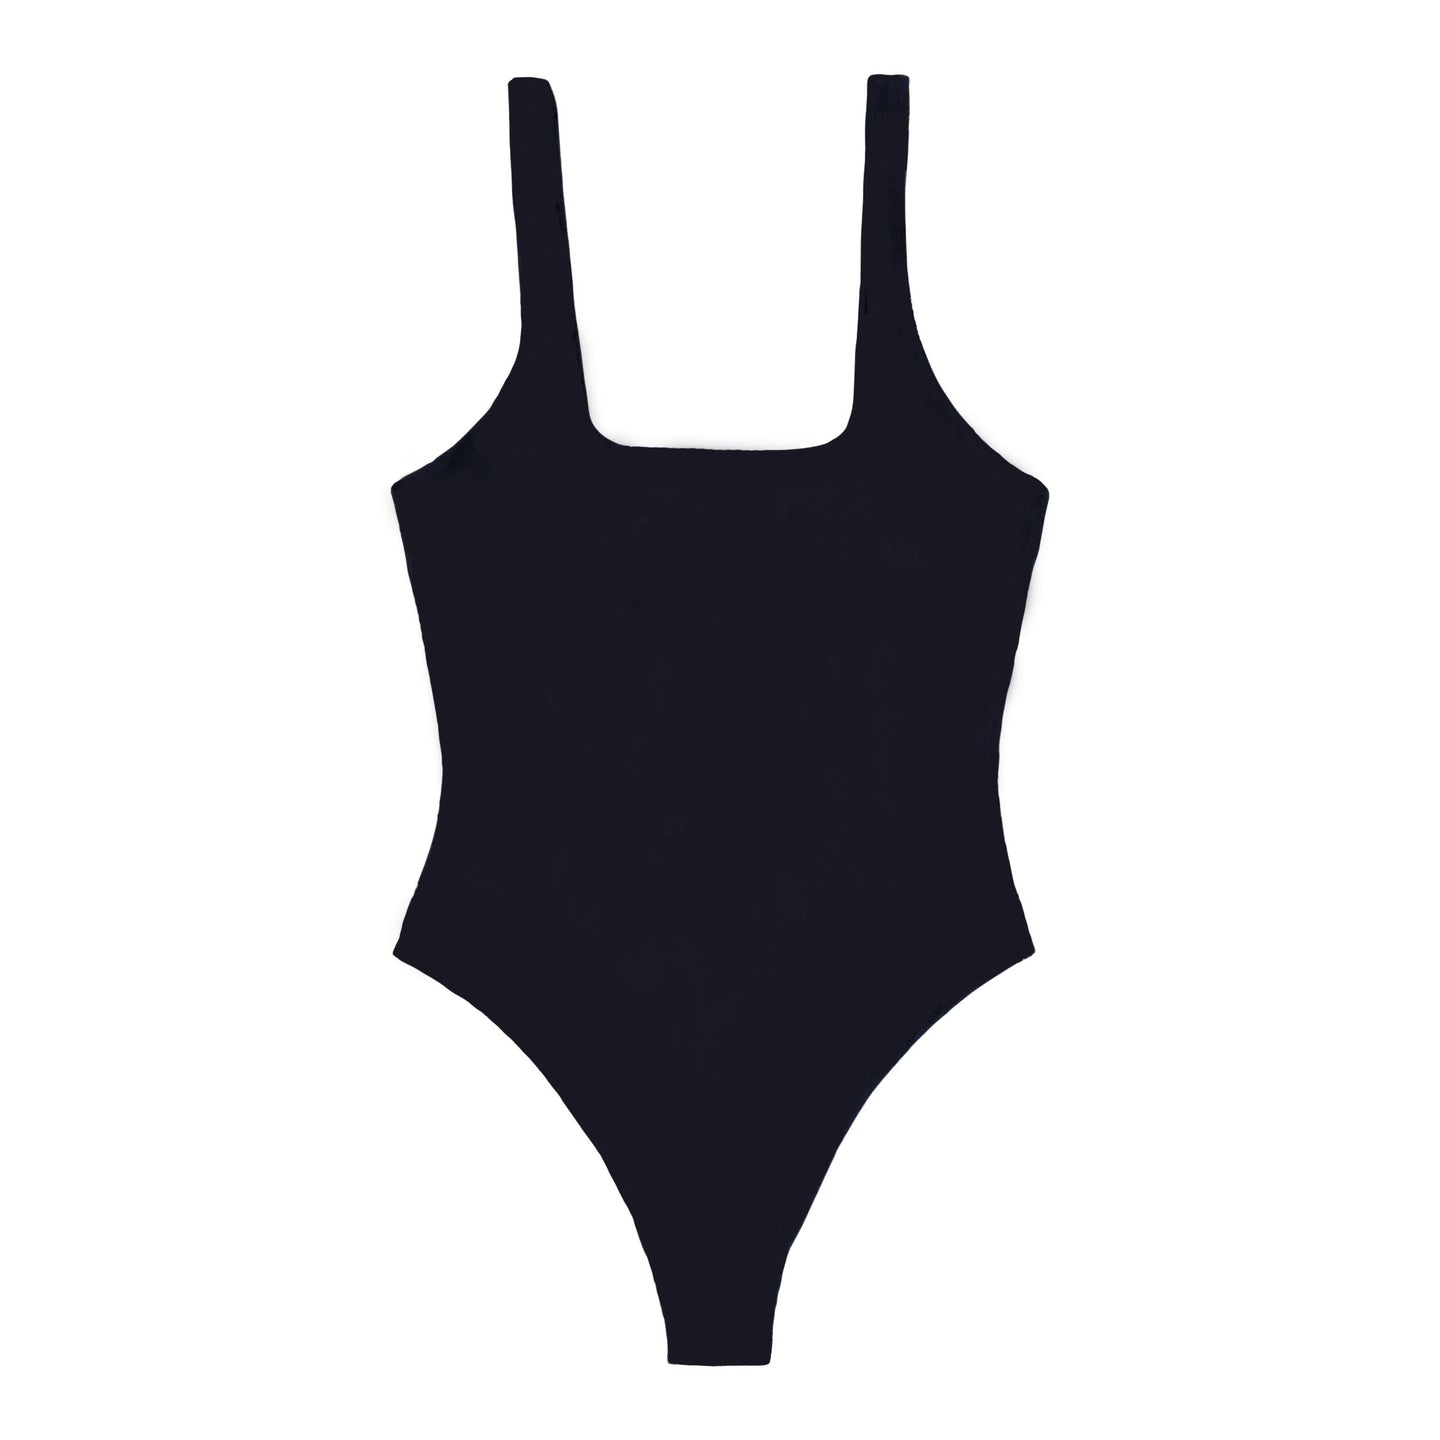 Chase womens one-piece in Black